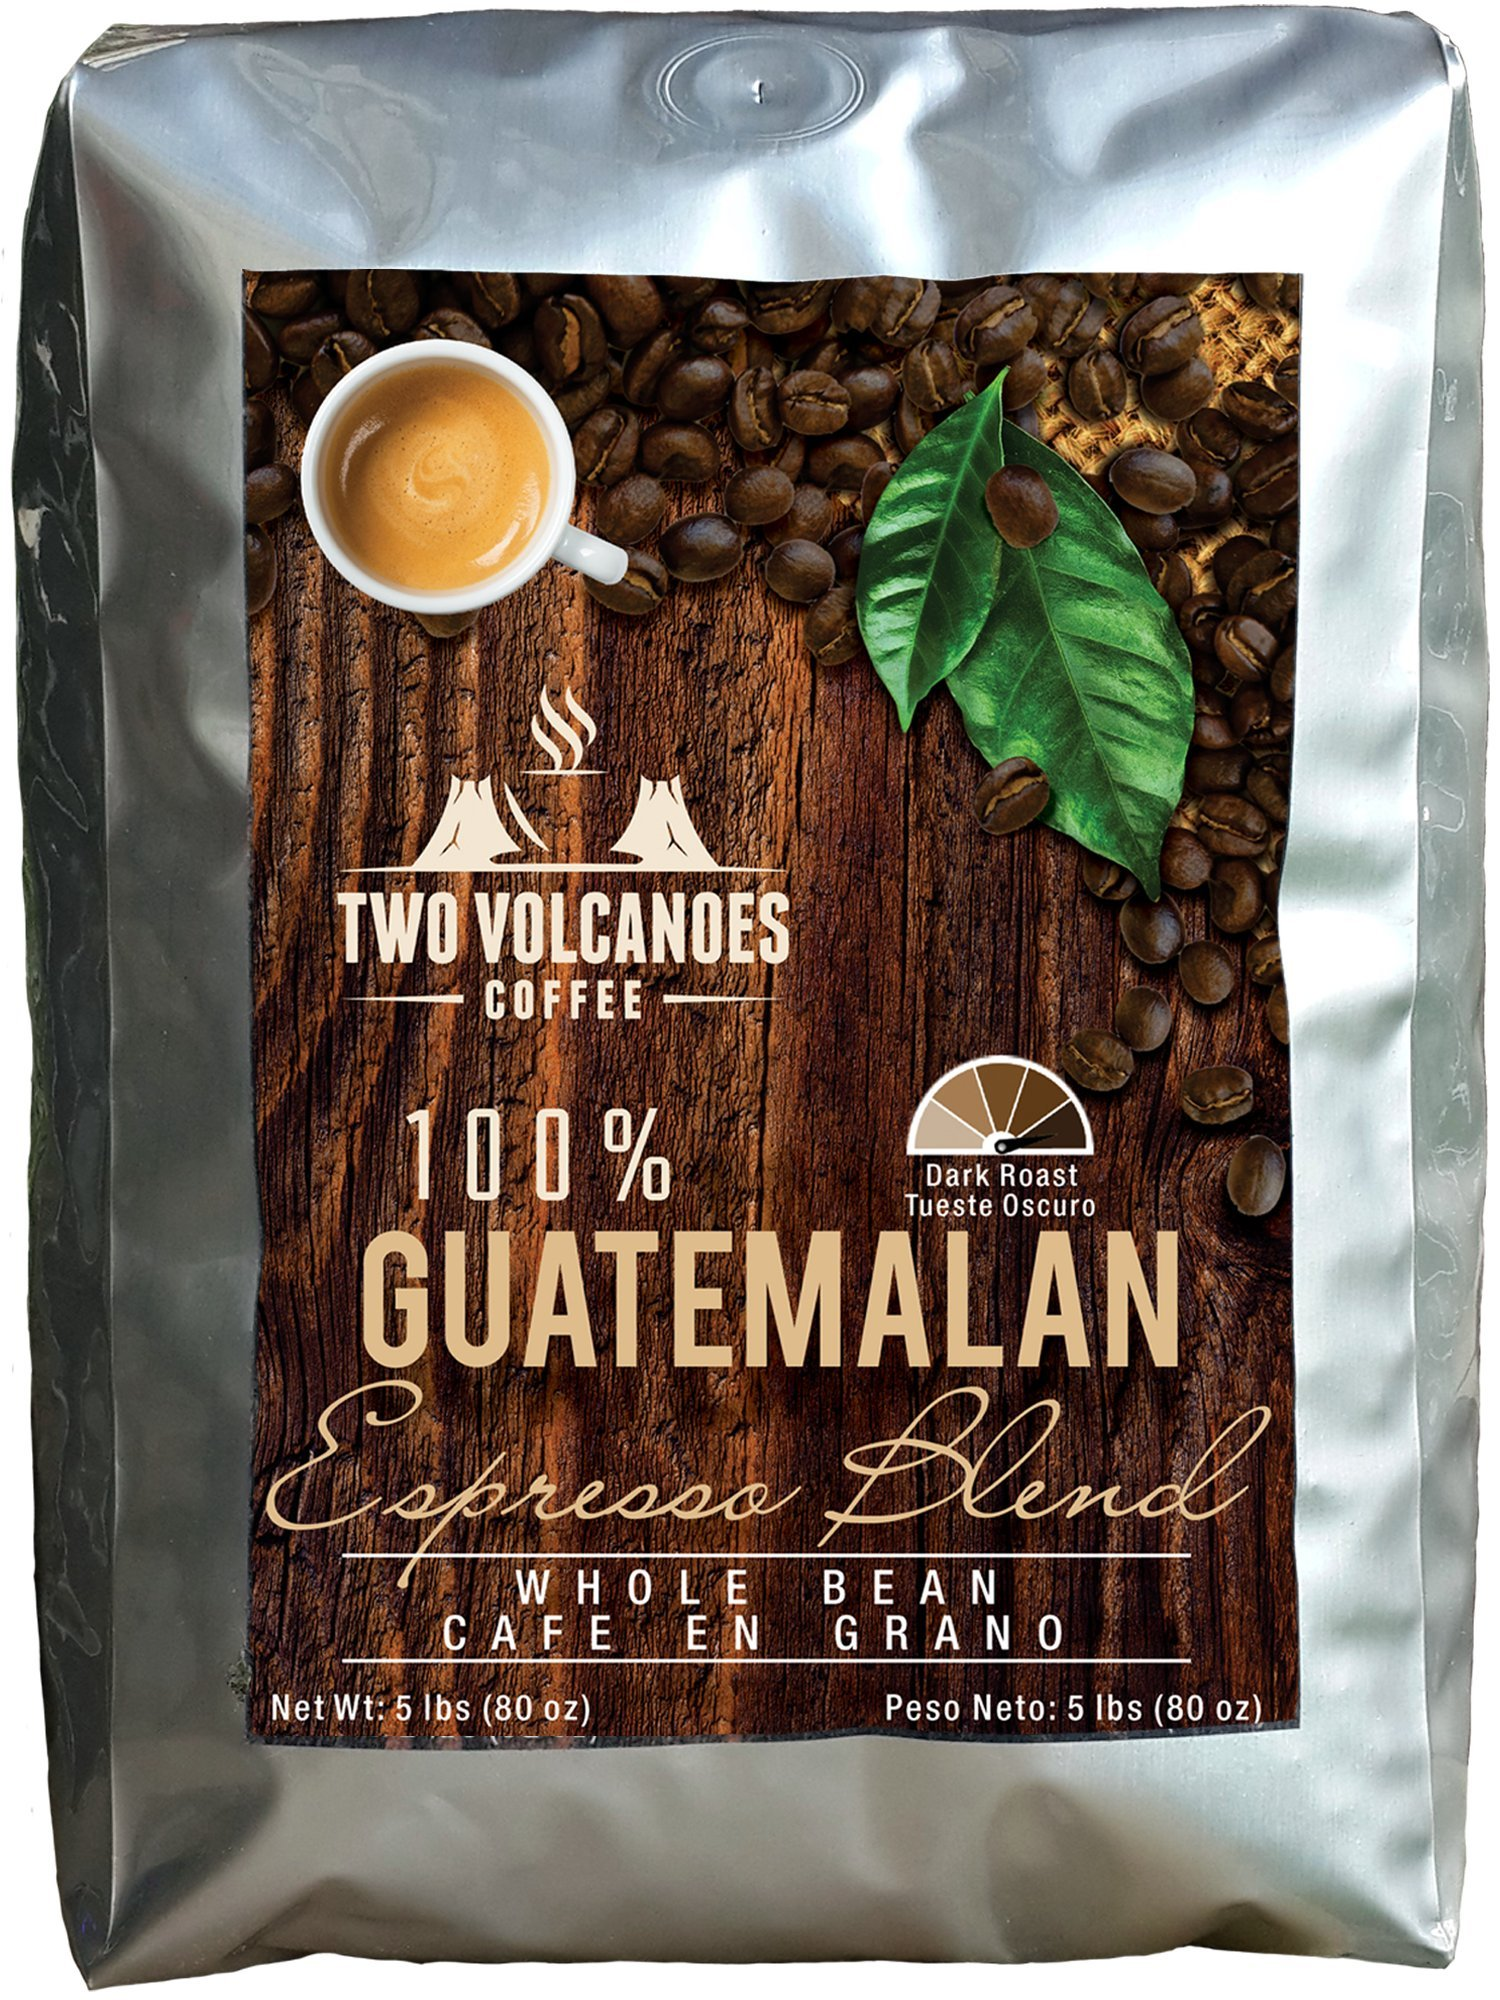 Two Volcanoes Whole Bean Coffee - 5 Lbs - Guatemalan Dark Roast Espresso Blend From Rare Gourmet Coffee Beans. Get The Kick, Enjoy the Smoothness! by Two Volcanoes Coffee